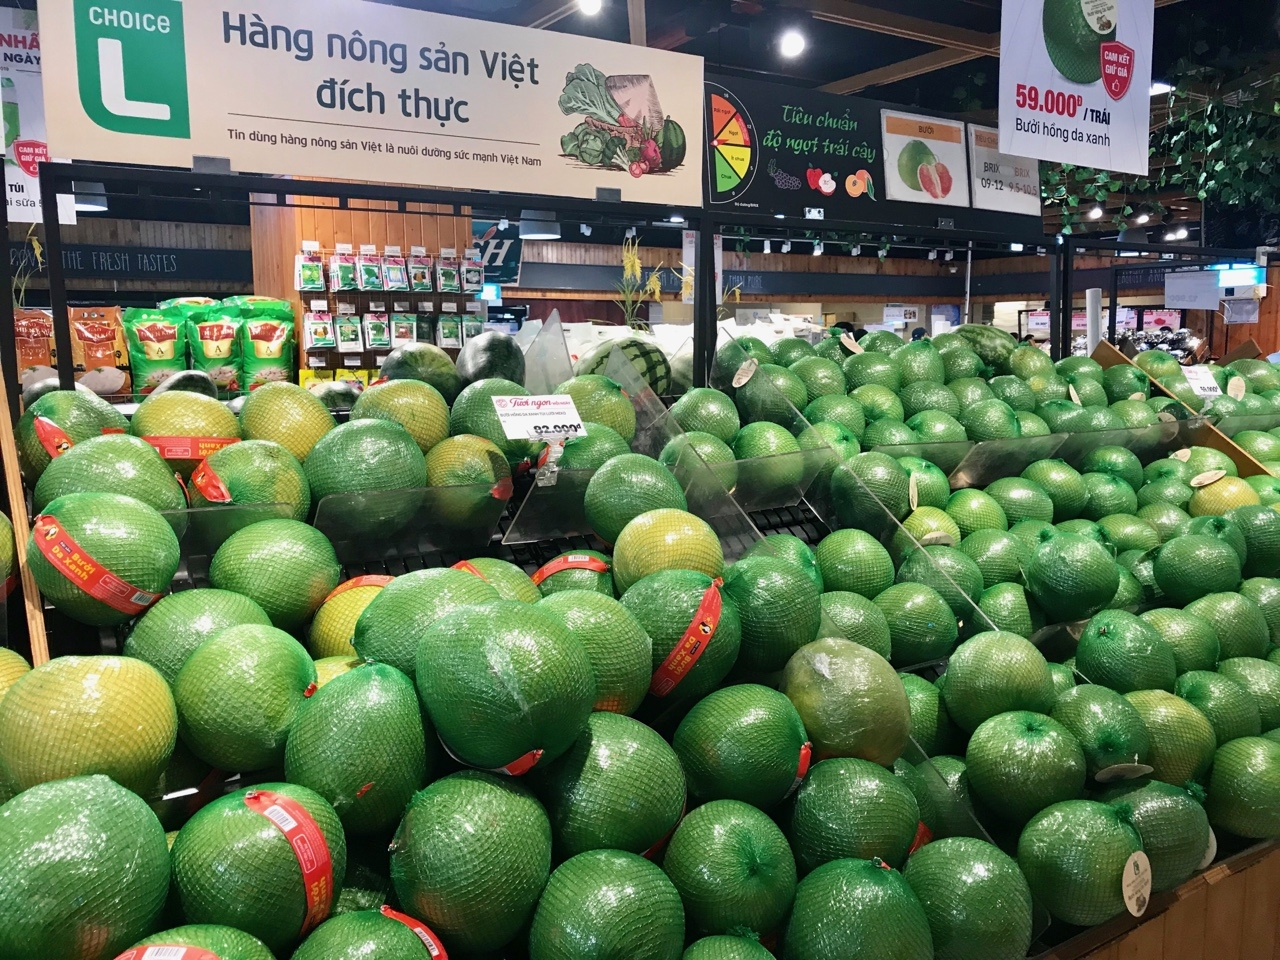 vietnams fruit exports surge in the first 6 months despite coronavirus